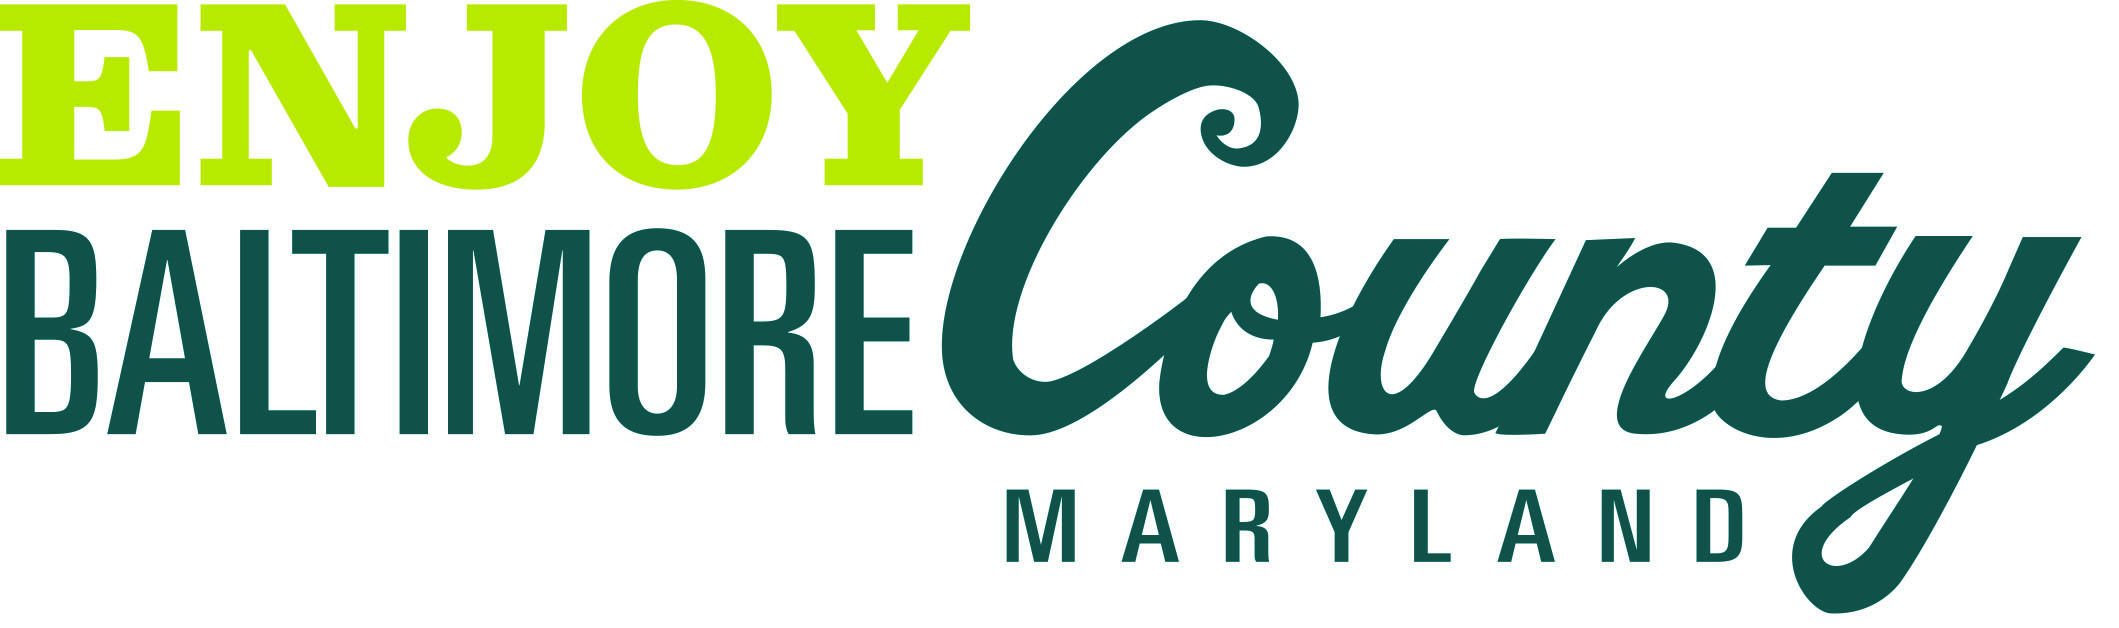 Baltimore County logo